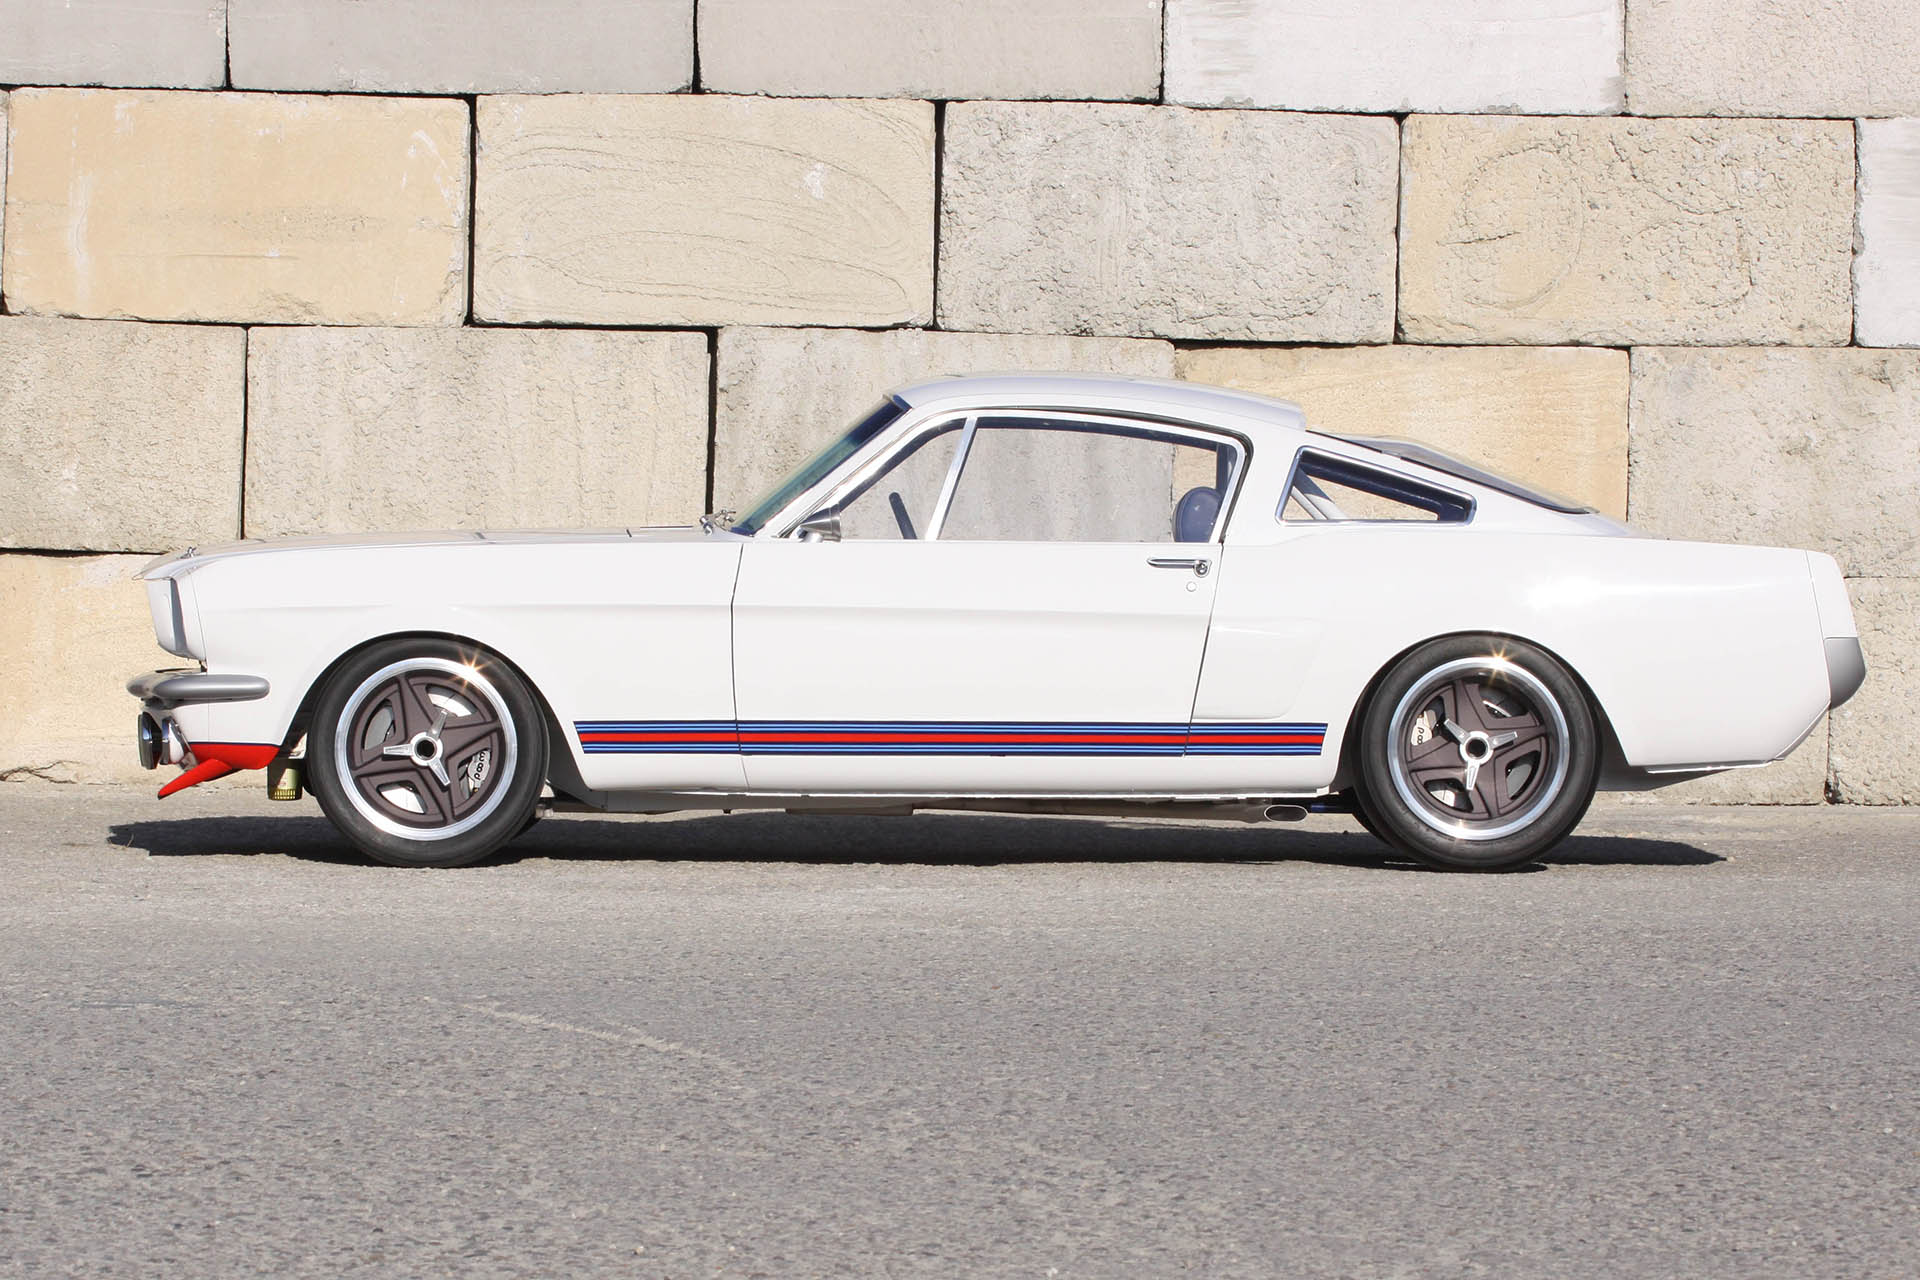 Mustang with Martini livery